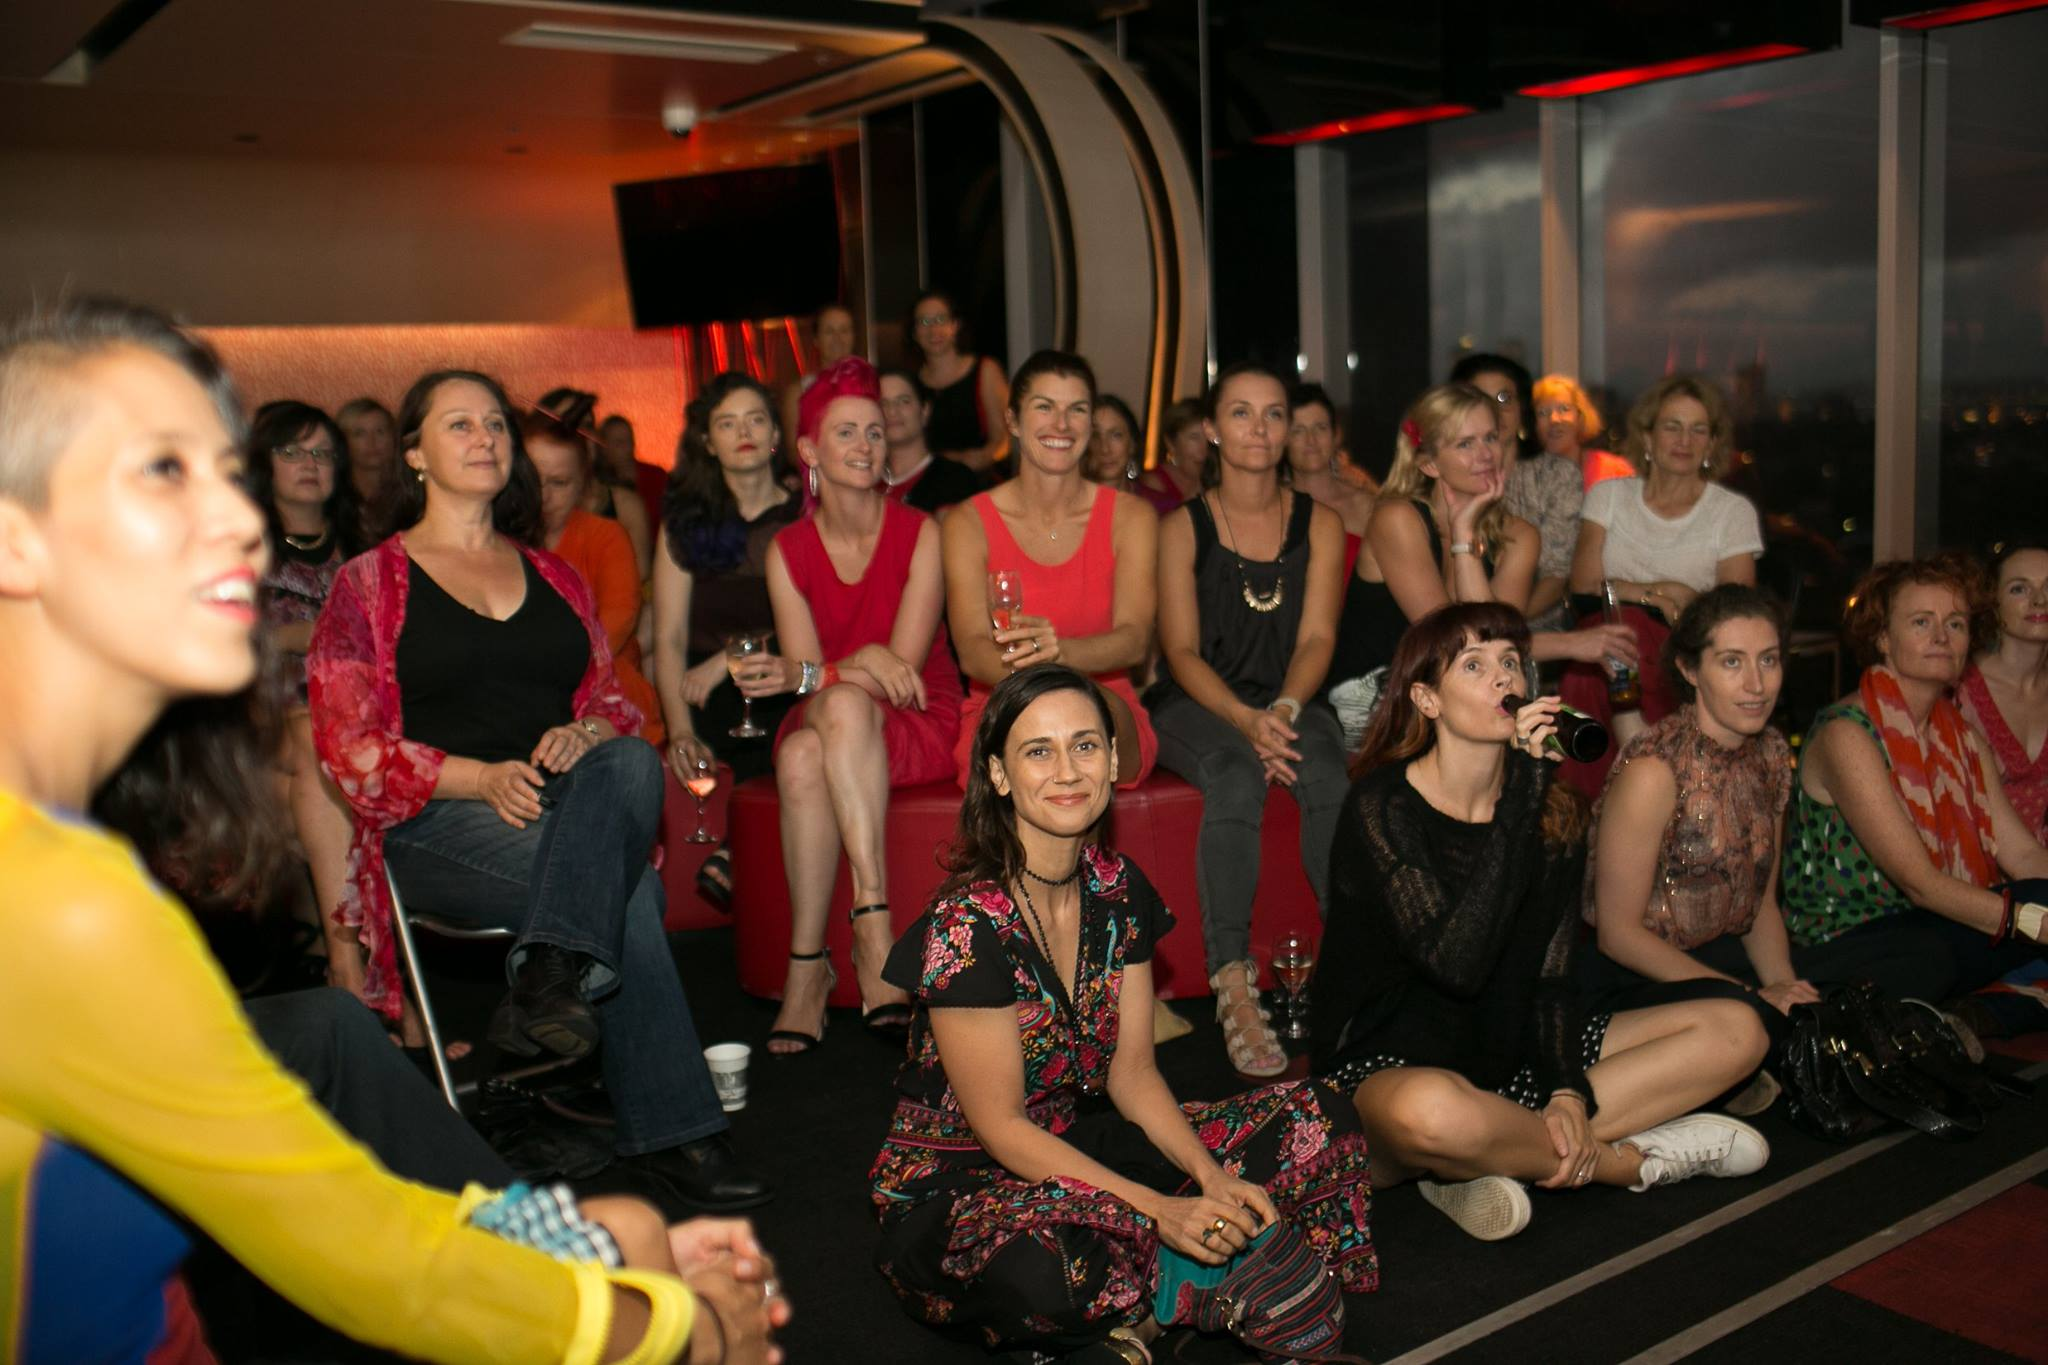 A room full of women in red